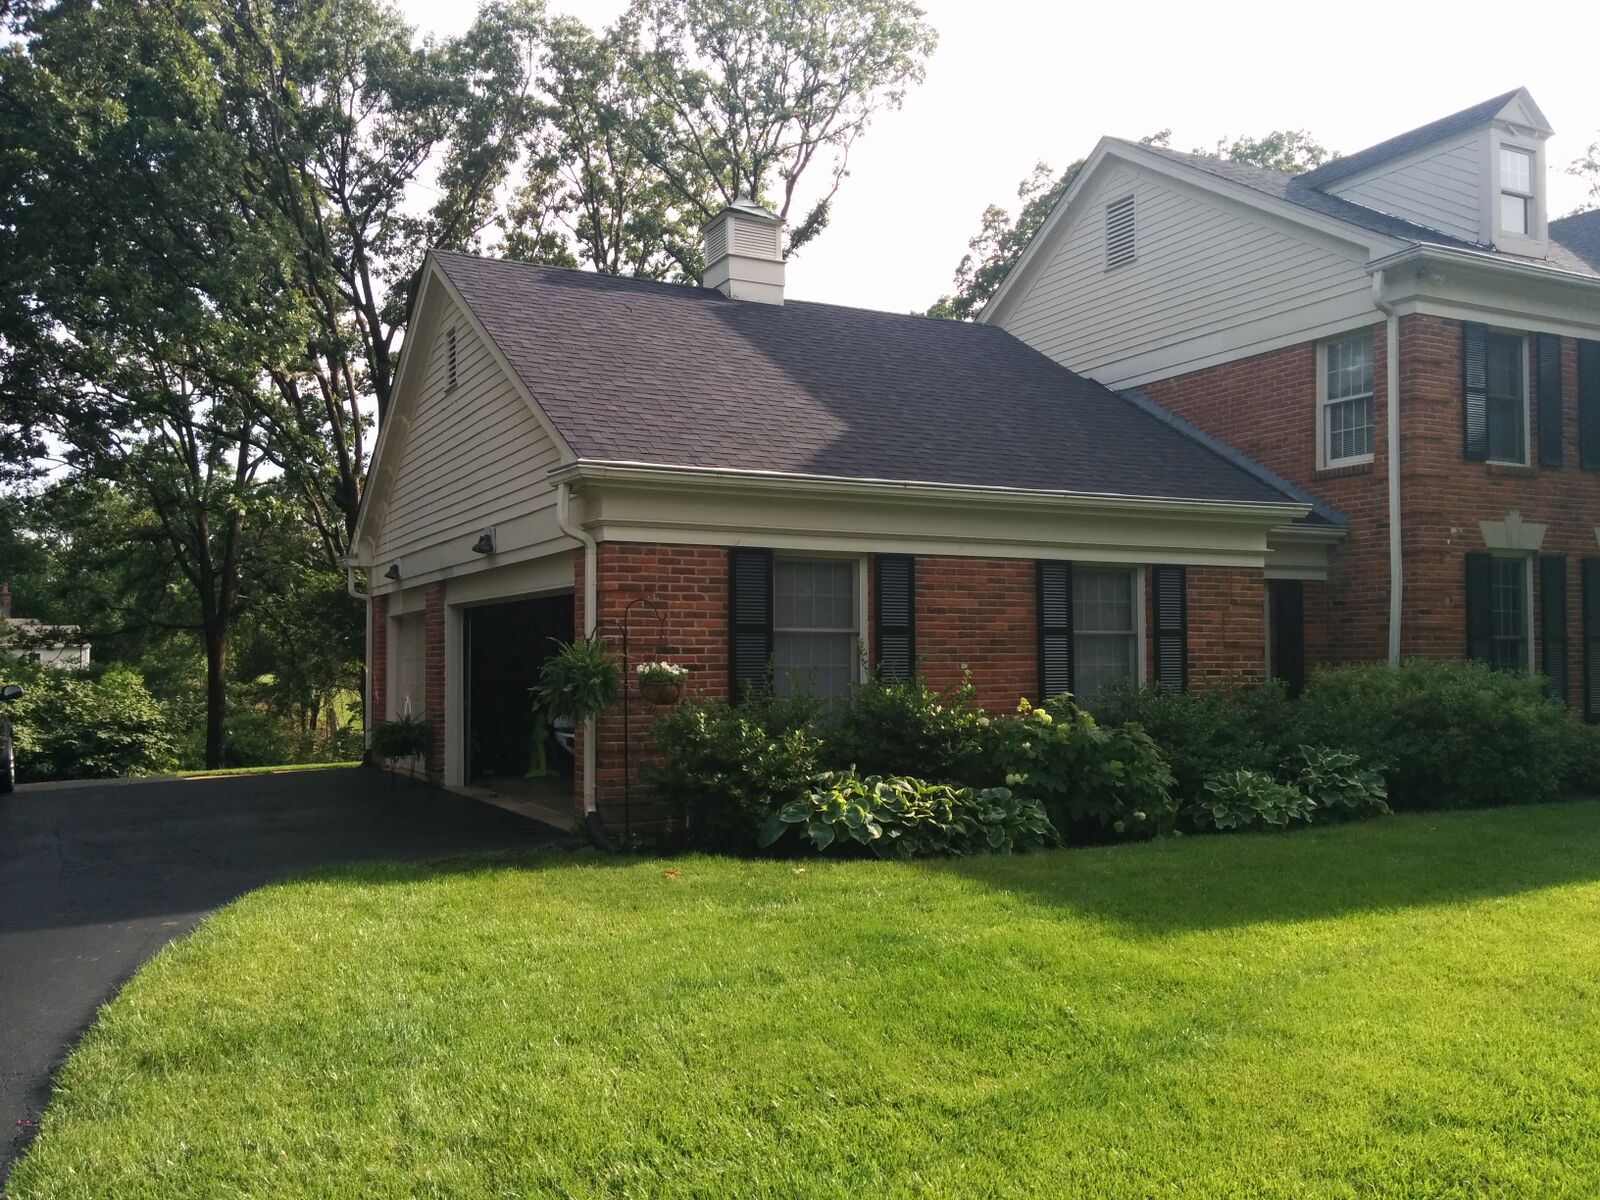 CertaPro Painters the exterior house painting experts in Town and Country, MO